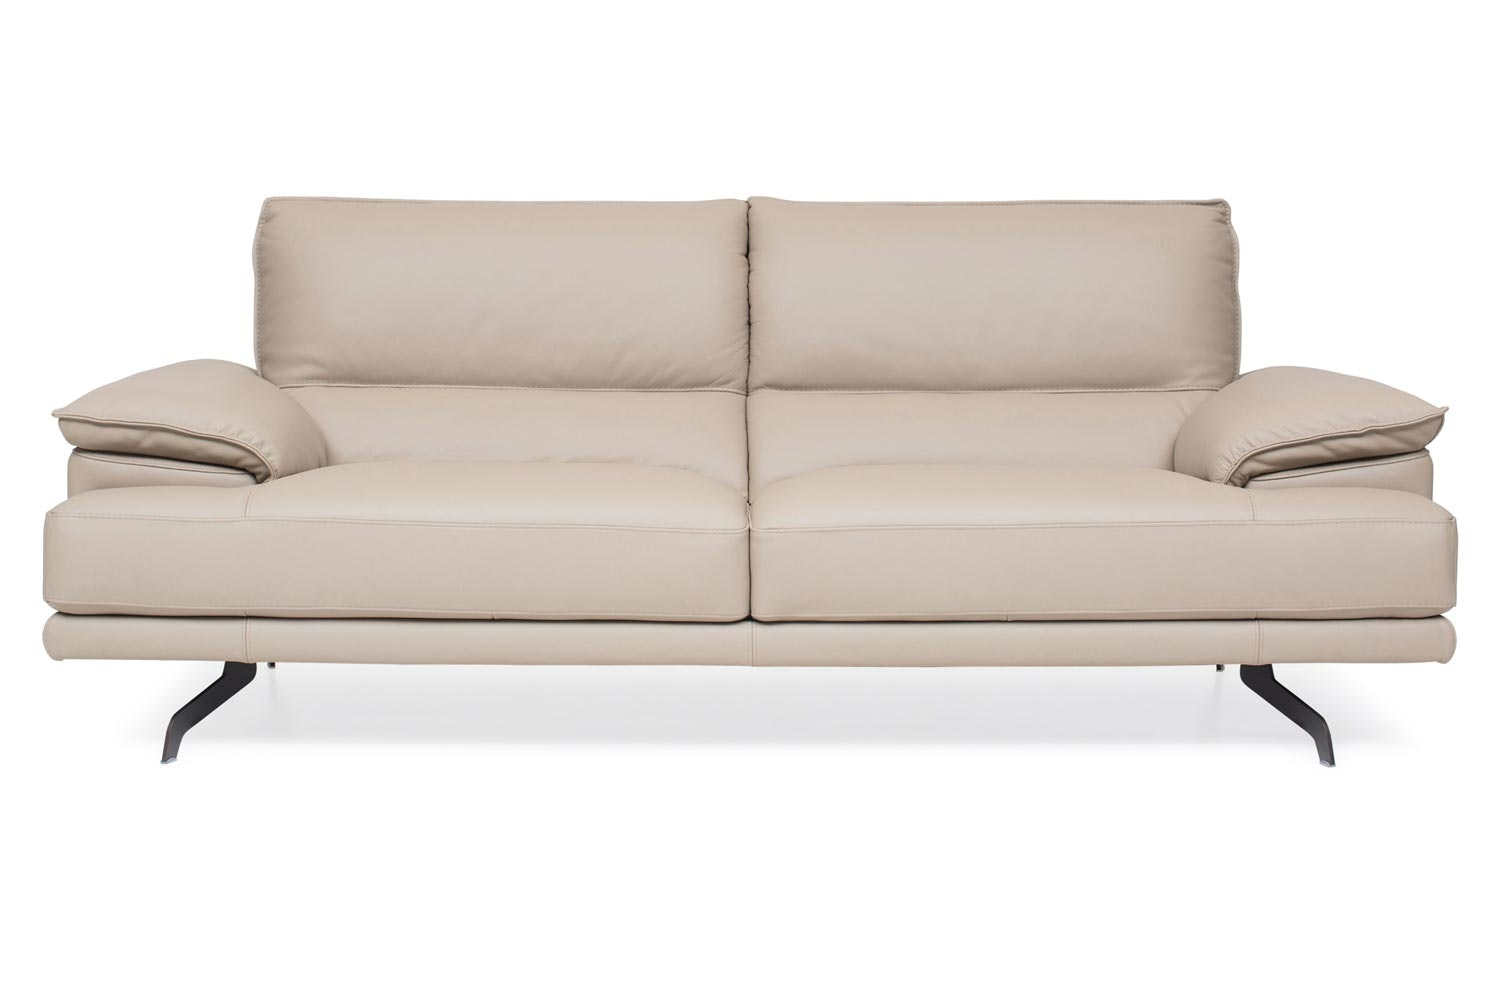 Kris 3 Seater Sofa